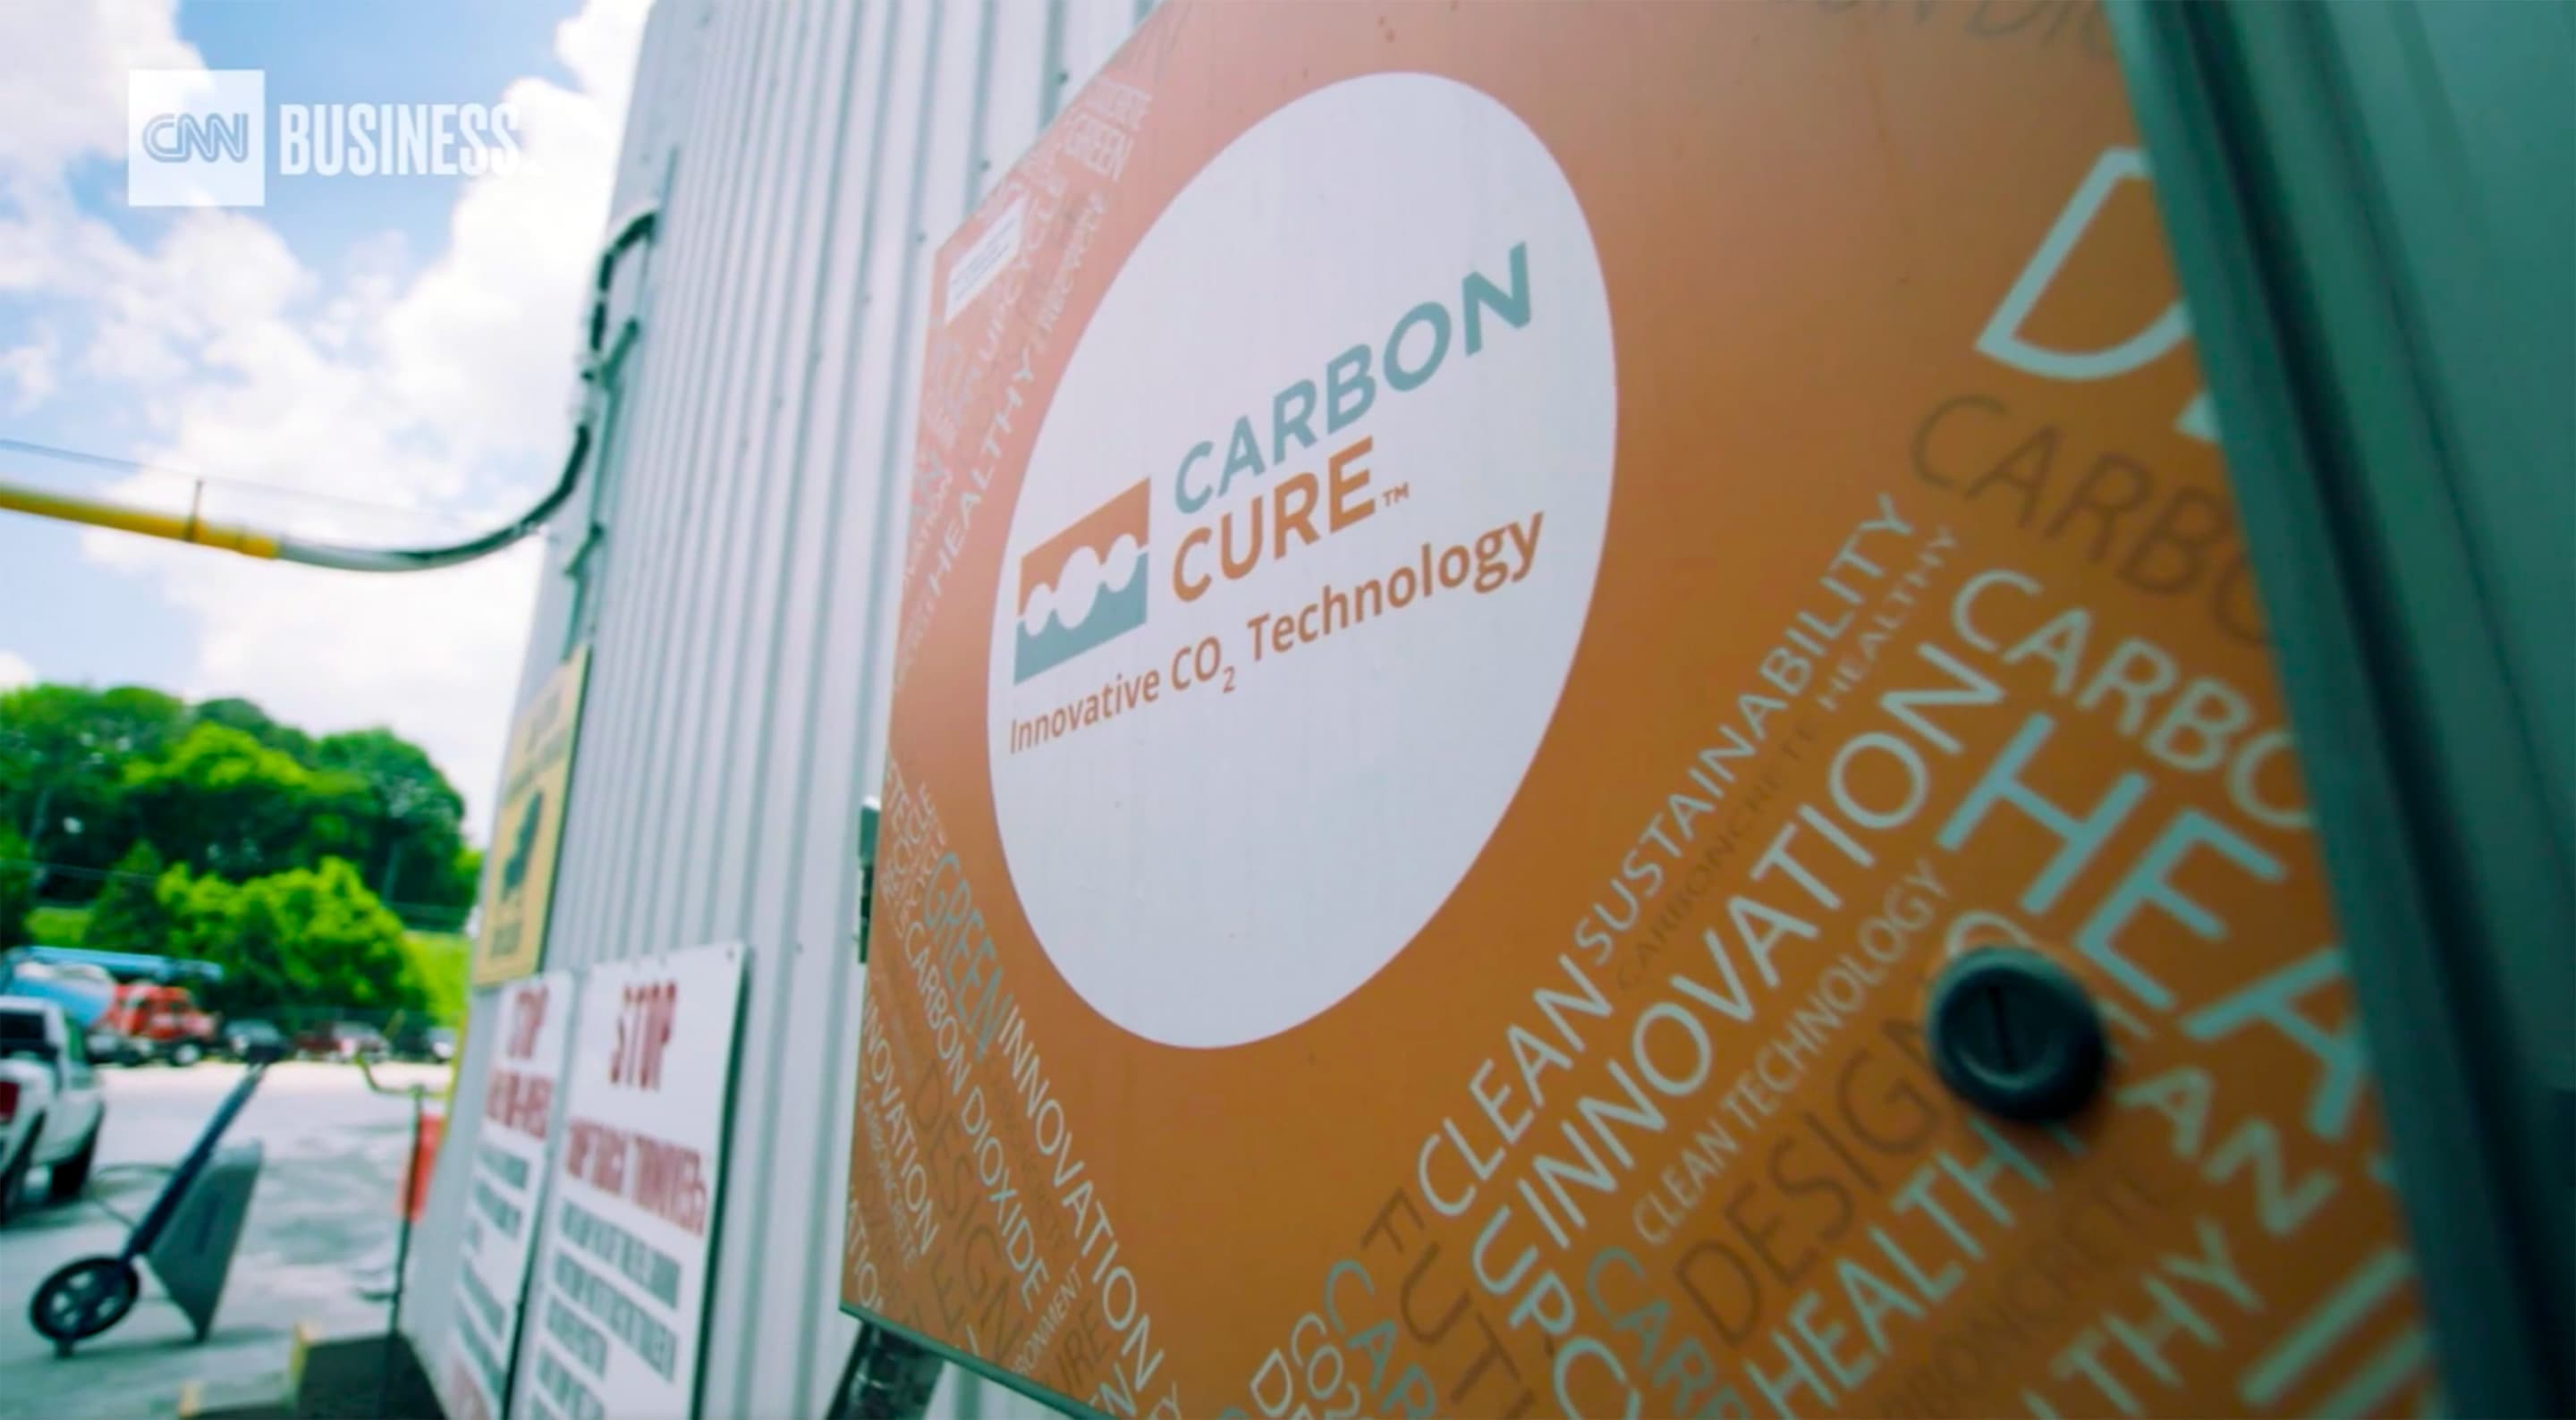 Amazon and Breakthrough Energy Ventures Co-Lead Investment in Cleantech Company, CarbonCure